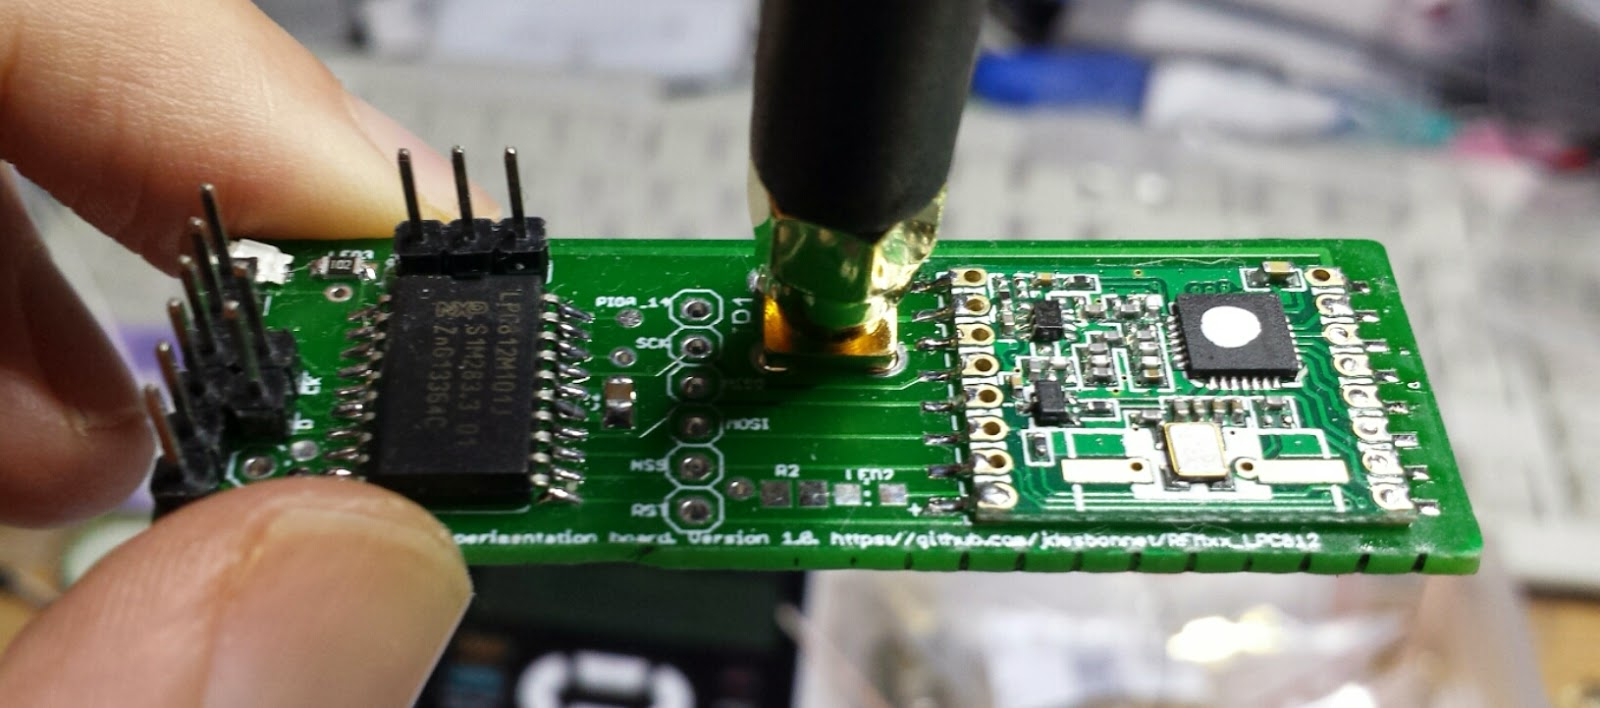 populated RFM69HW version of the PCB